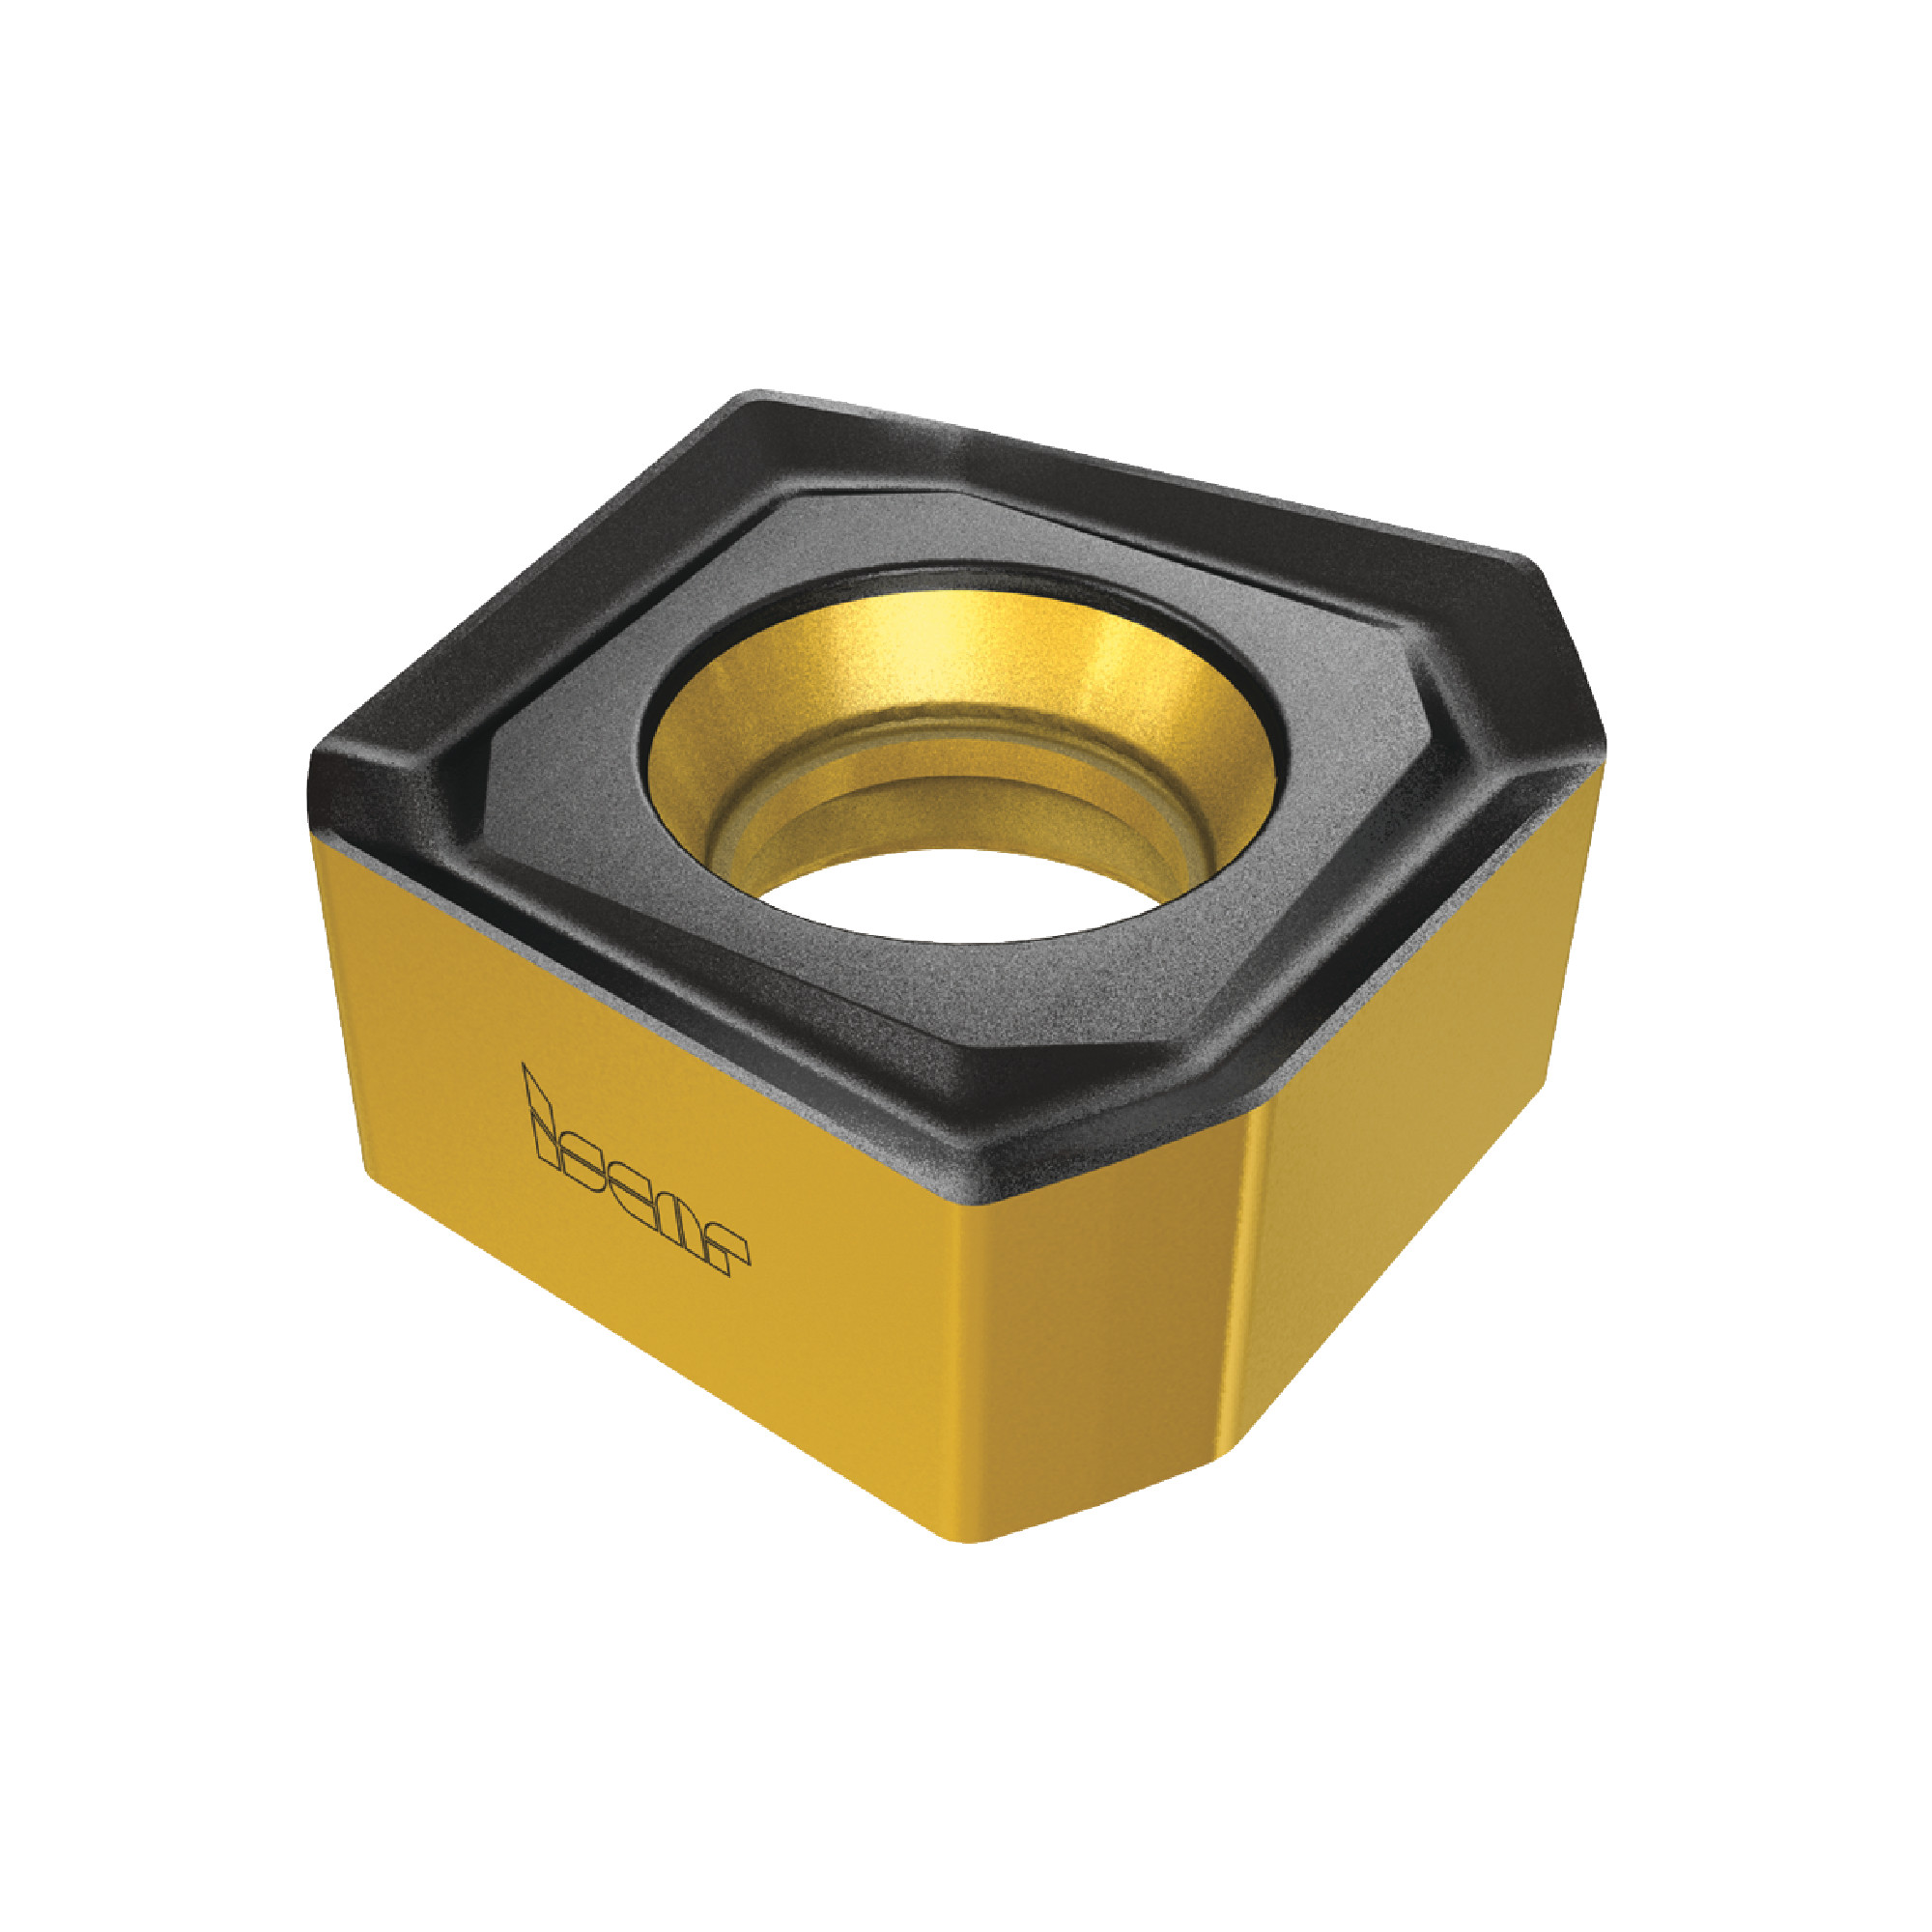 ISCAR - S845 SNMU 1305ANR-MM IC830 Square / INDEXABLE Carbide MILLING INSERT